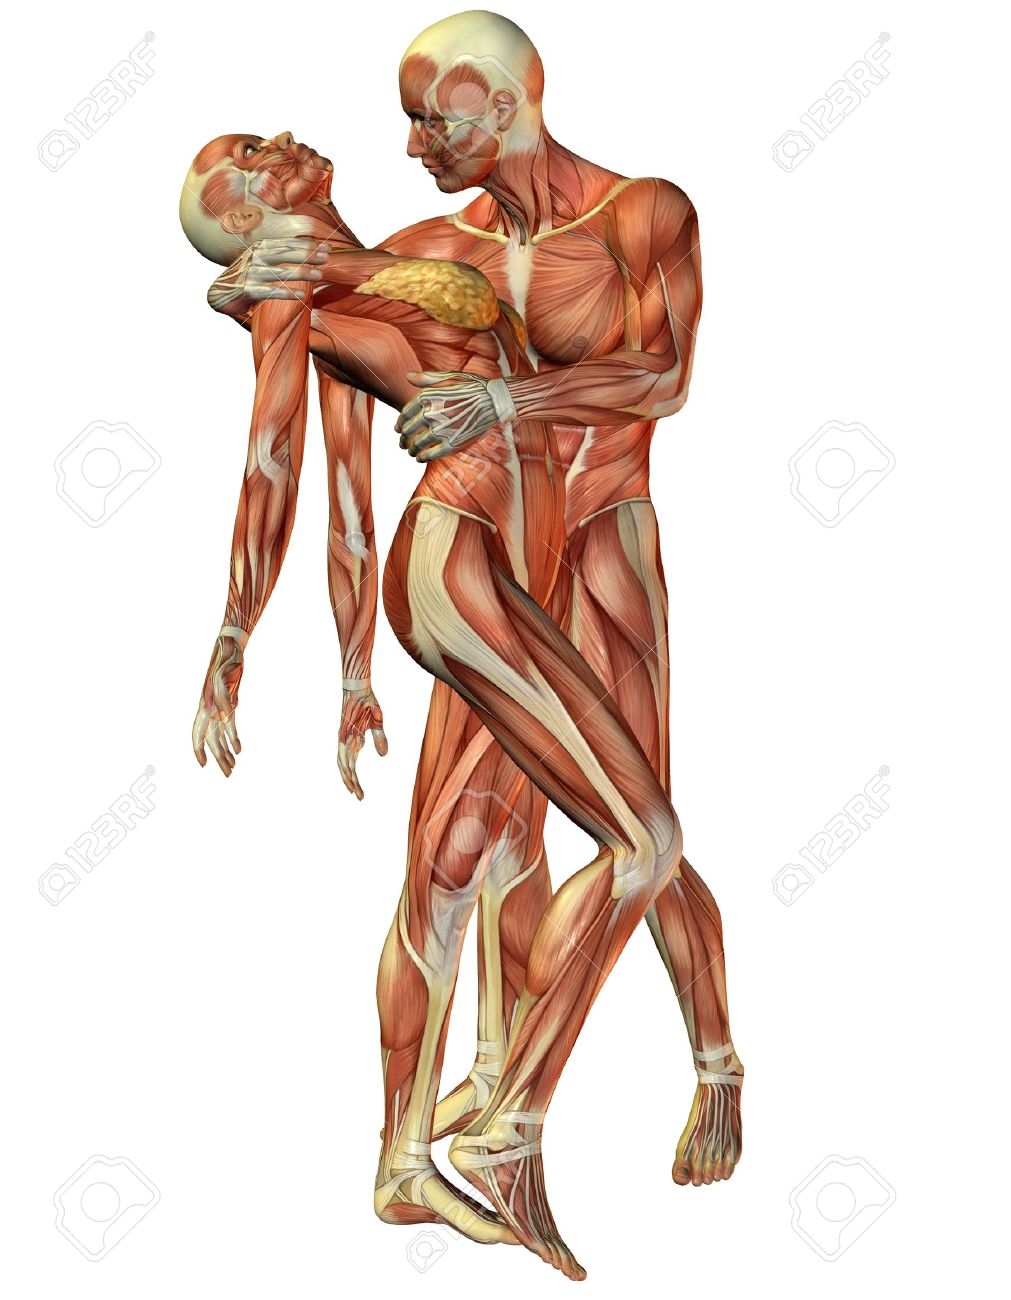 3D Rendering Muscle Woman And Man Standing Stock Photo, Picture And ...